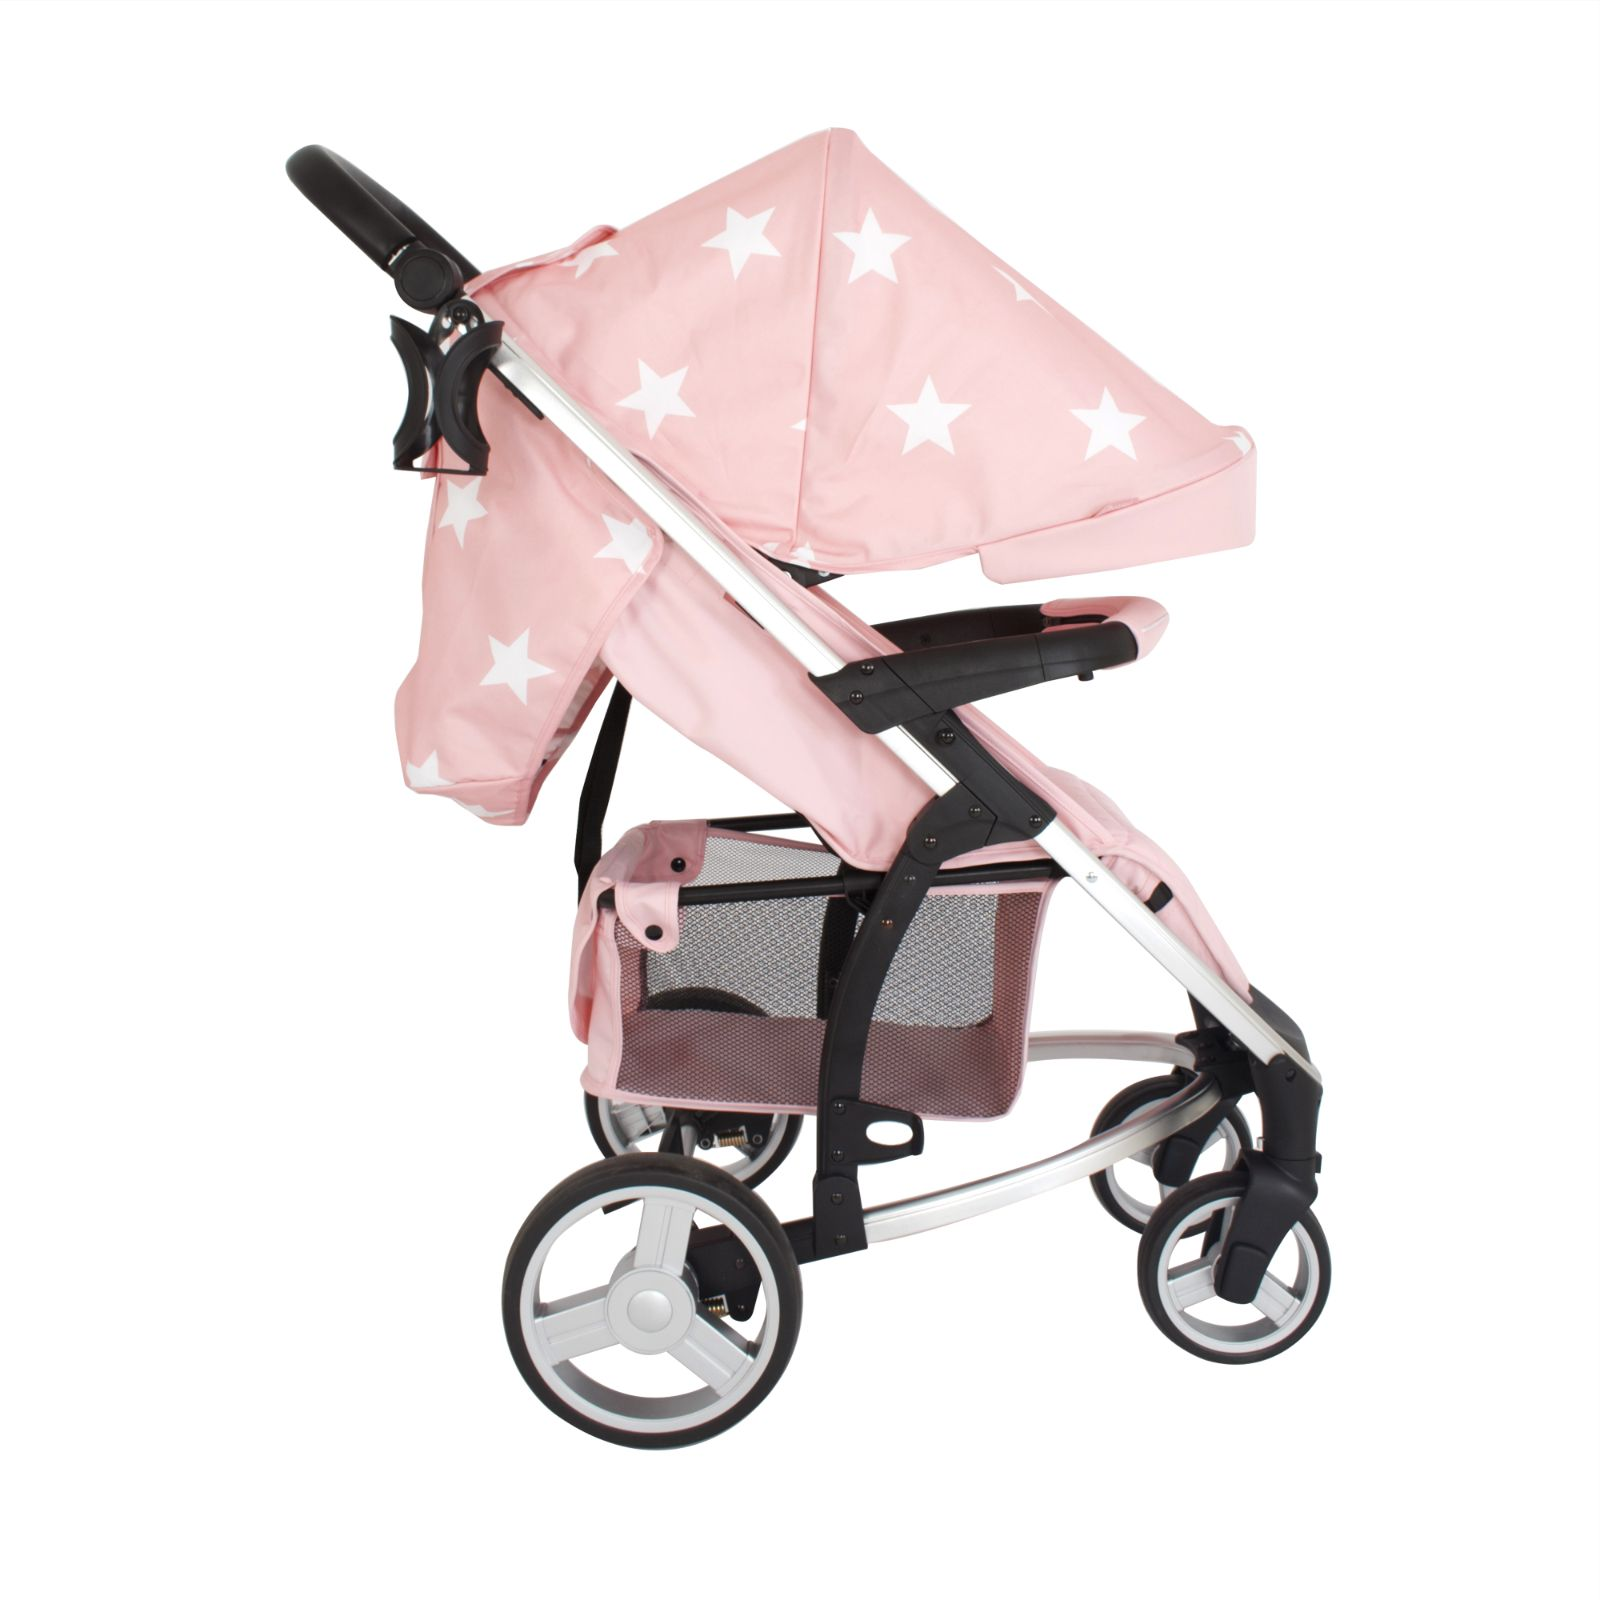 My Babiie Mb200 Travel System Amp Carrycot Pink Stars